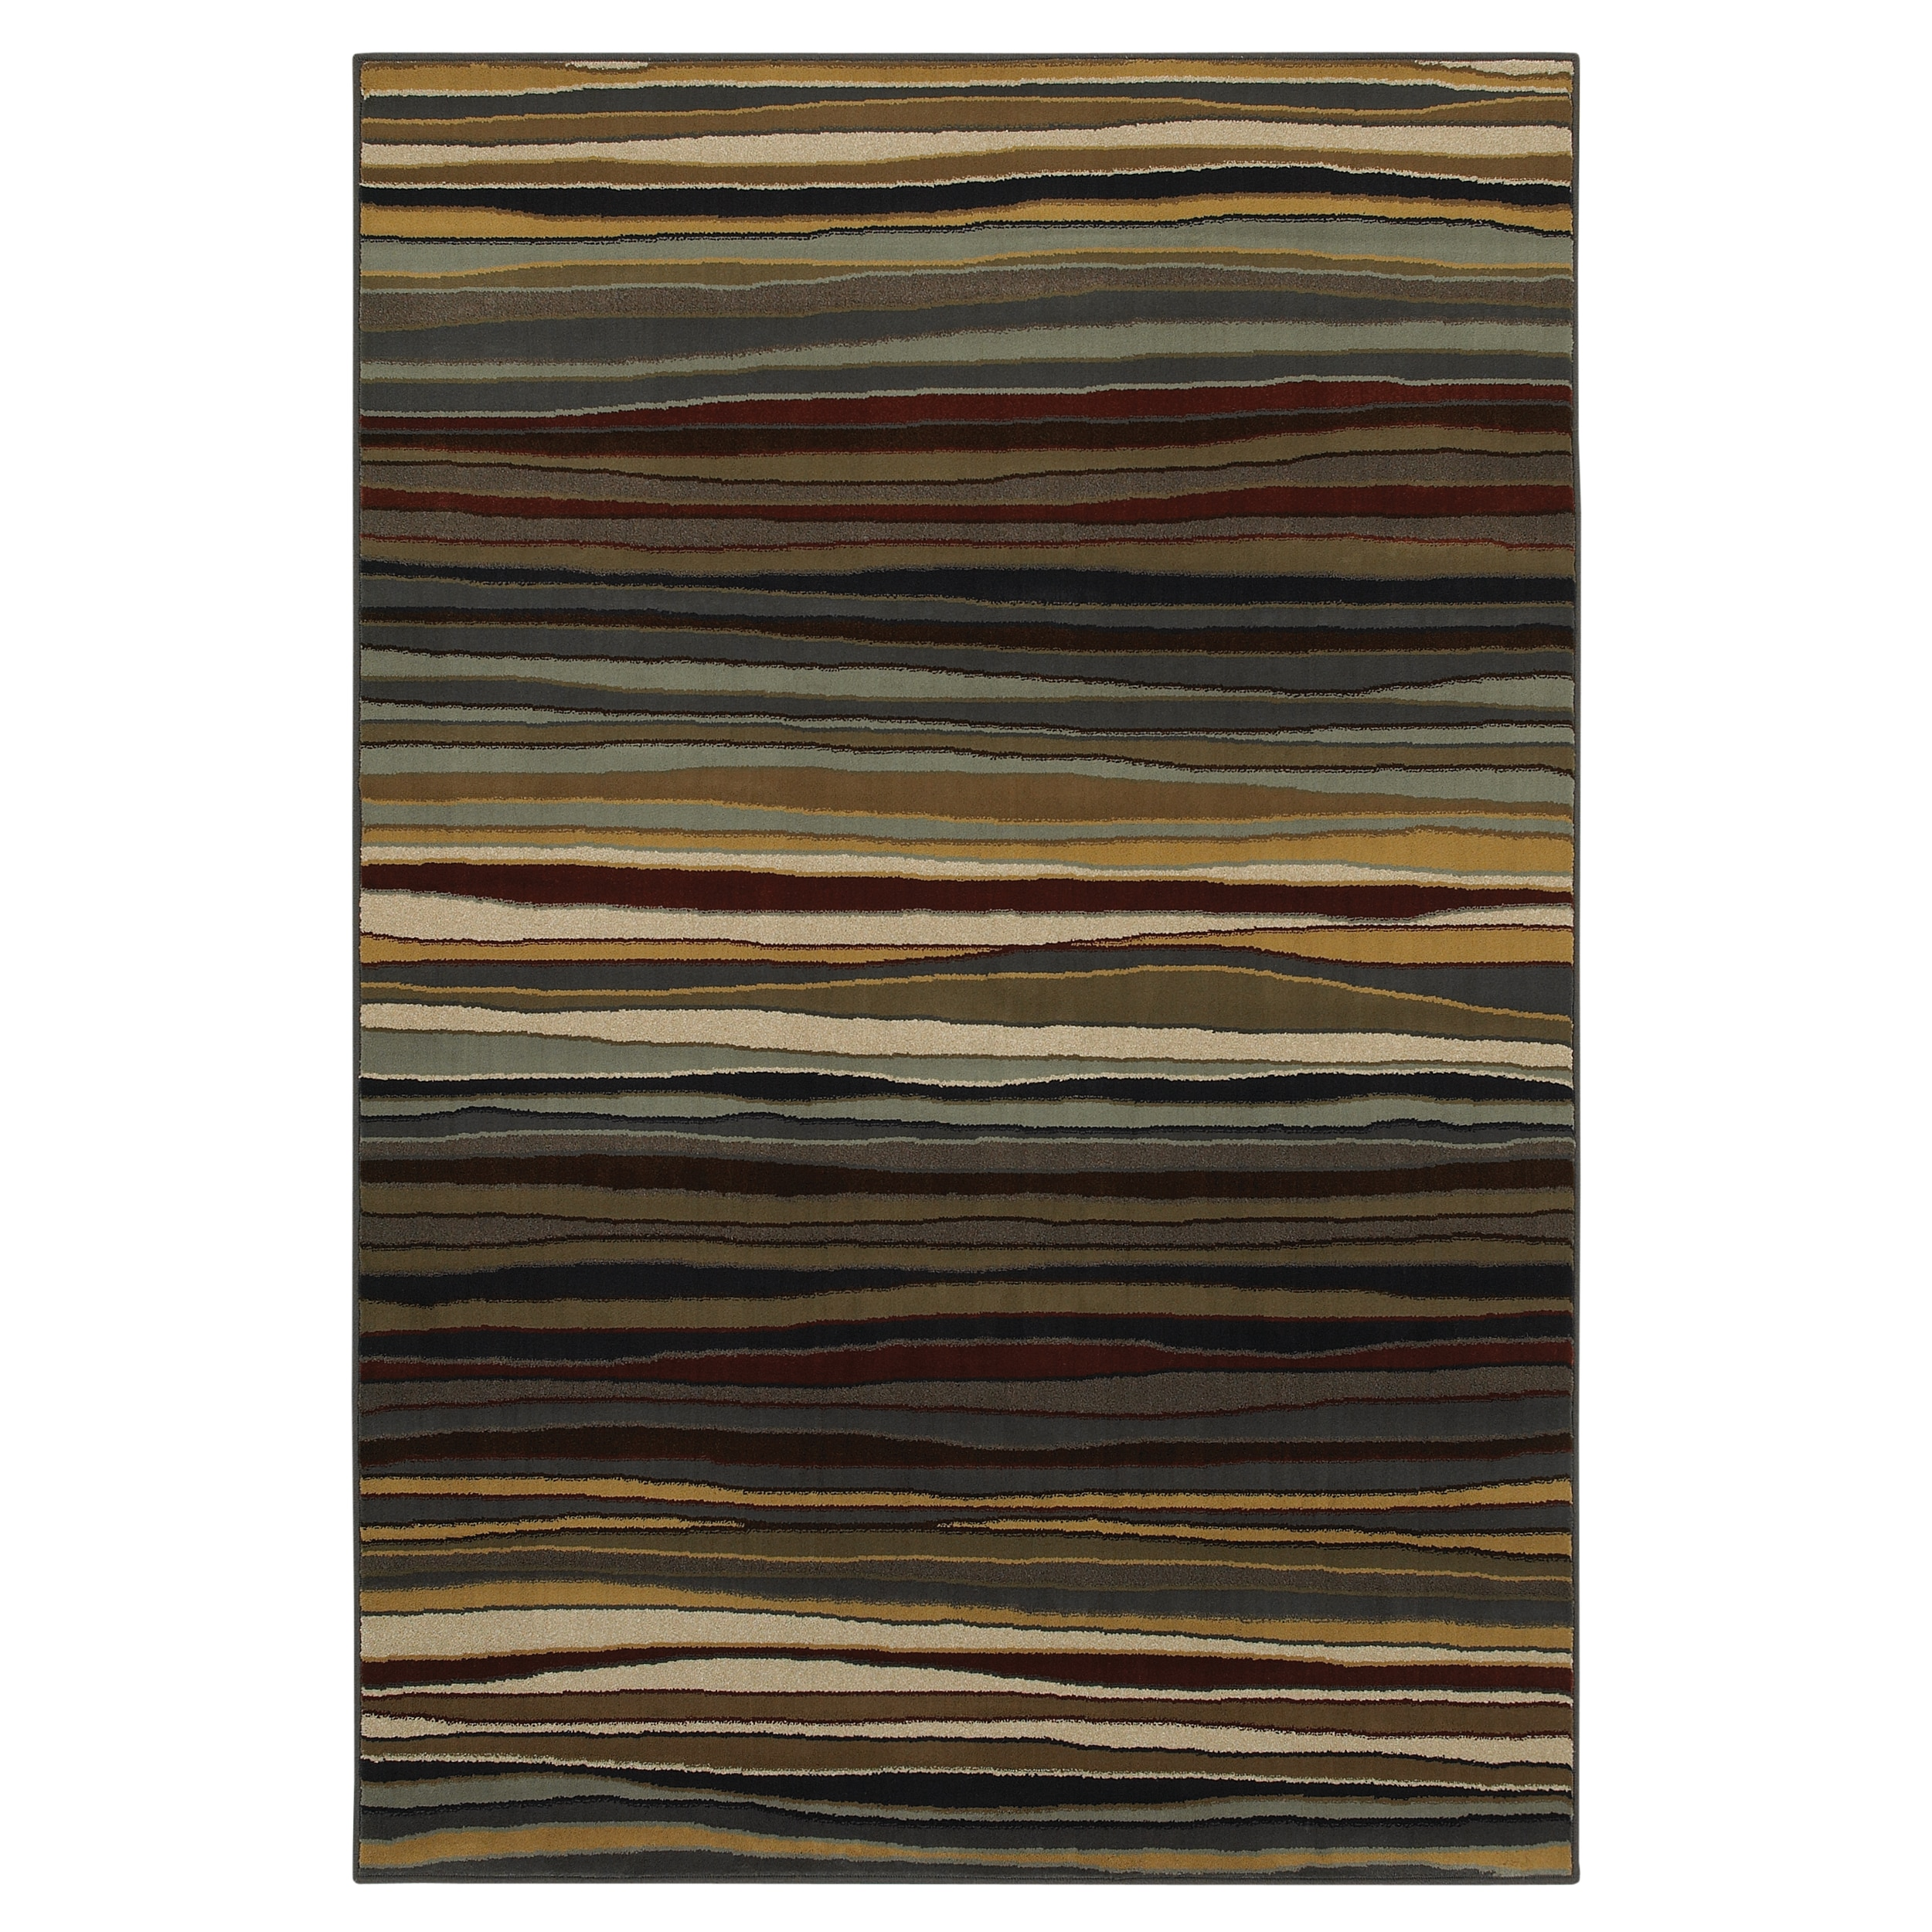 Rigby Brown Striped Rug (5'3 x 7'10)